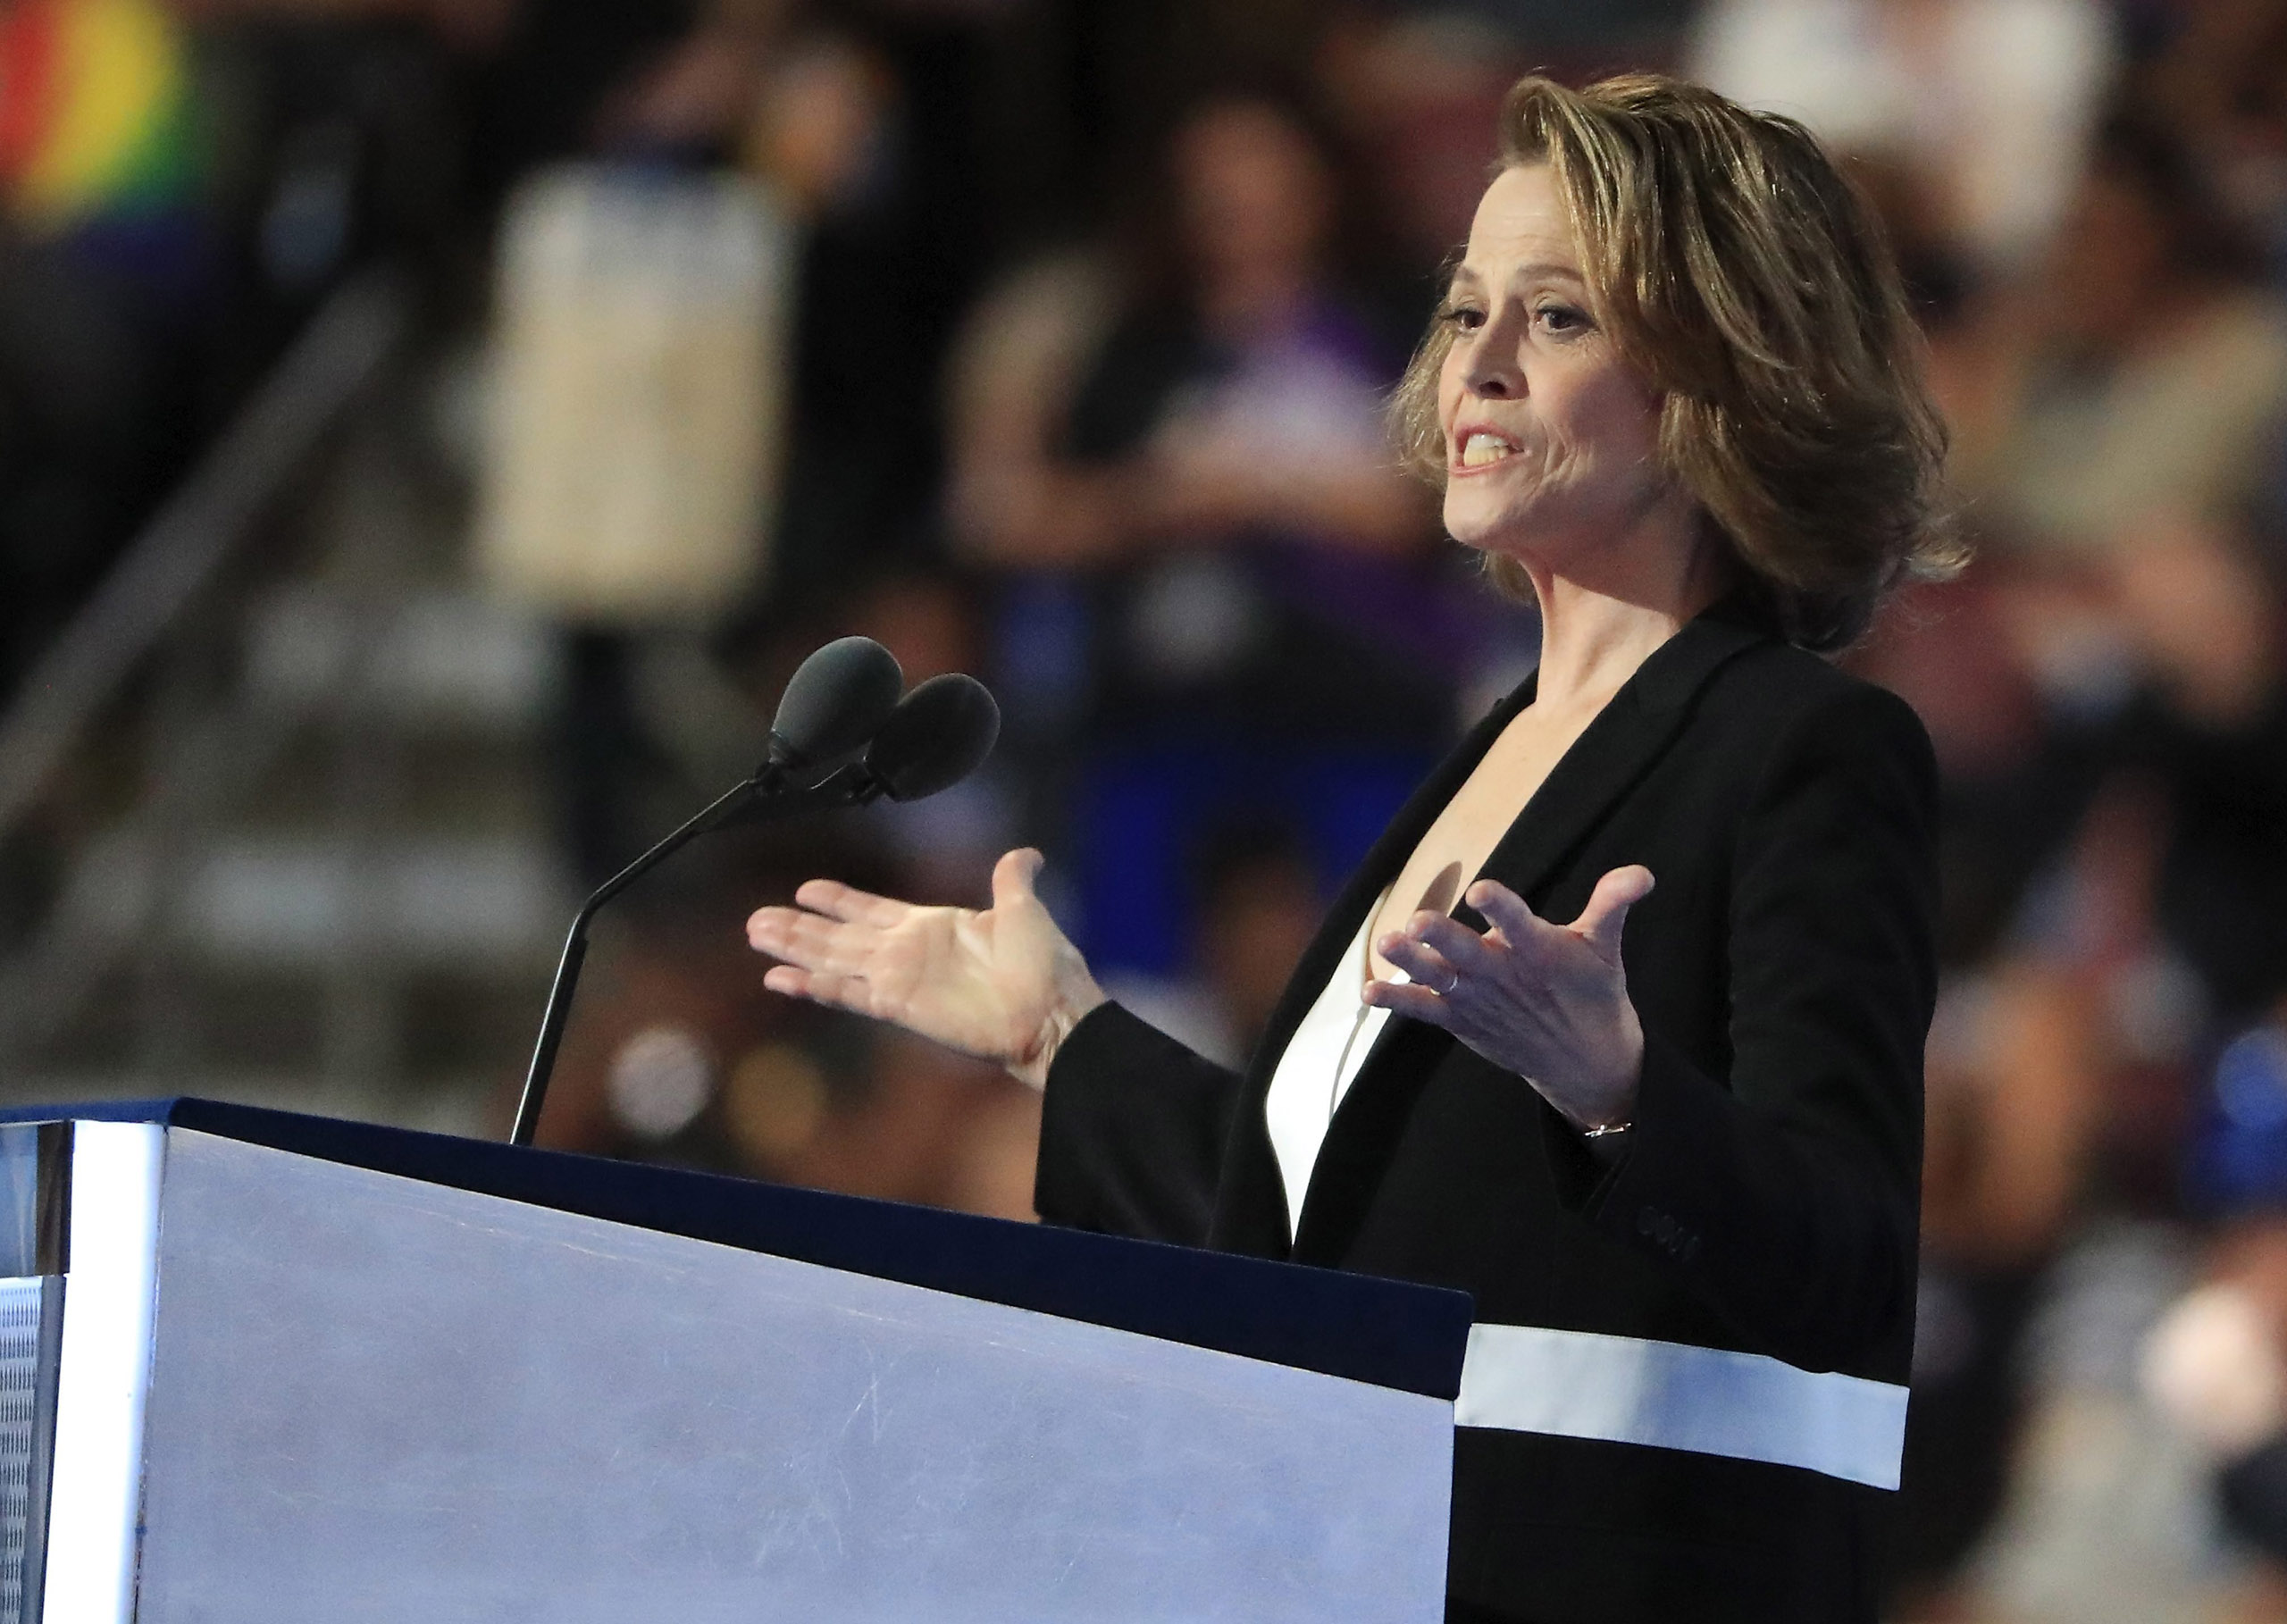 Sigourney Weaver speaks on the third day of the Democratic National Convention at the Wells Fargo Center in Philadelphia on July 27, 2016.